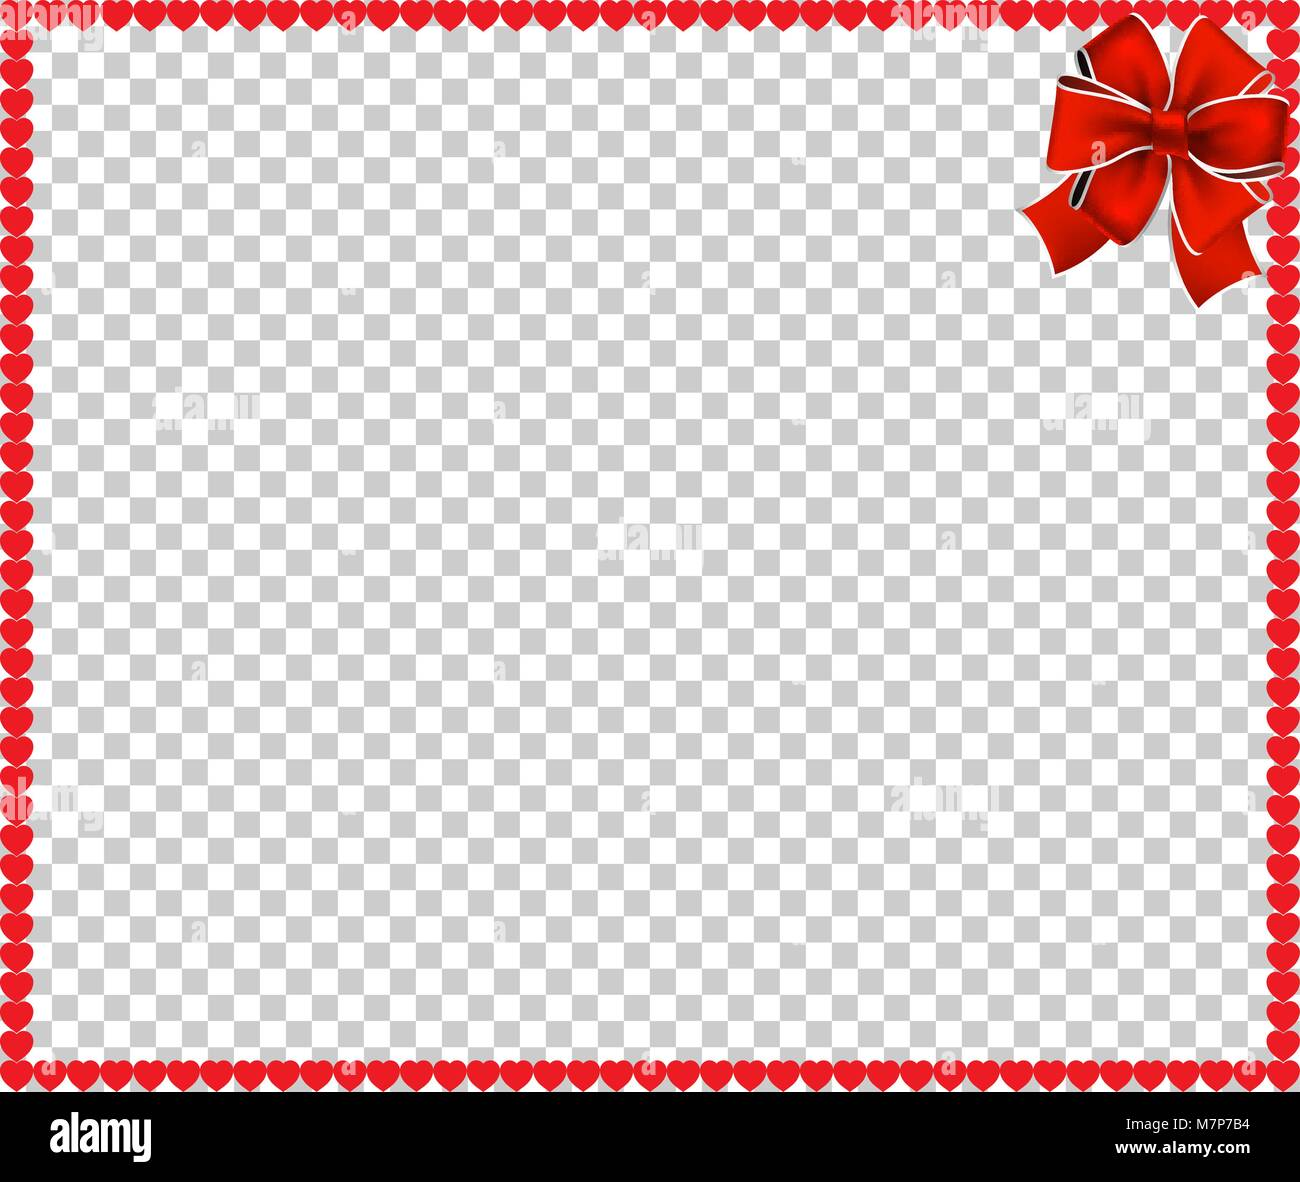 Vector Full Frame Border With Red Cartoon Hearts And Festive Ribbon Stock Vector Image Art Alamy,Traditional Latest Mangalsutra Designs Only Gold